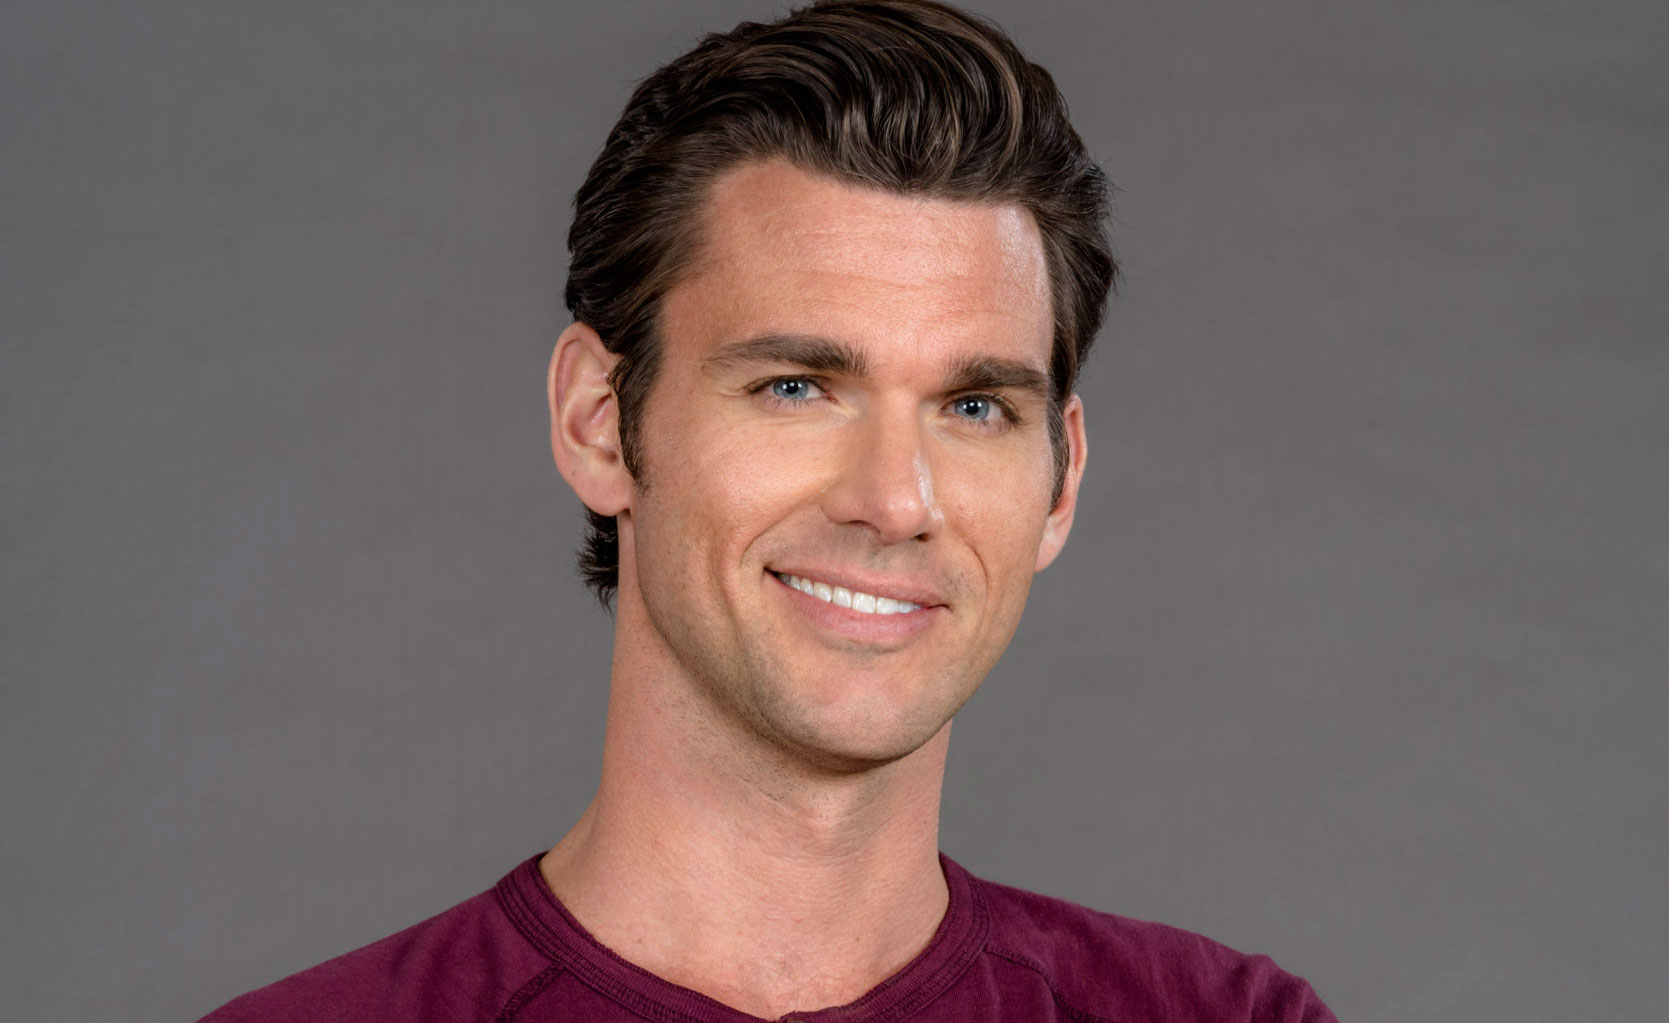 Kevin McGarry Net Worth 2020, Bio, Relationship, and Career Updates